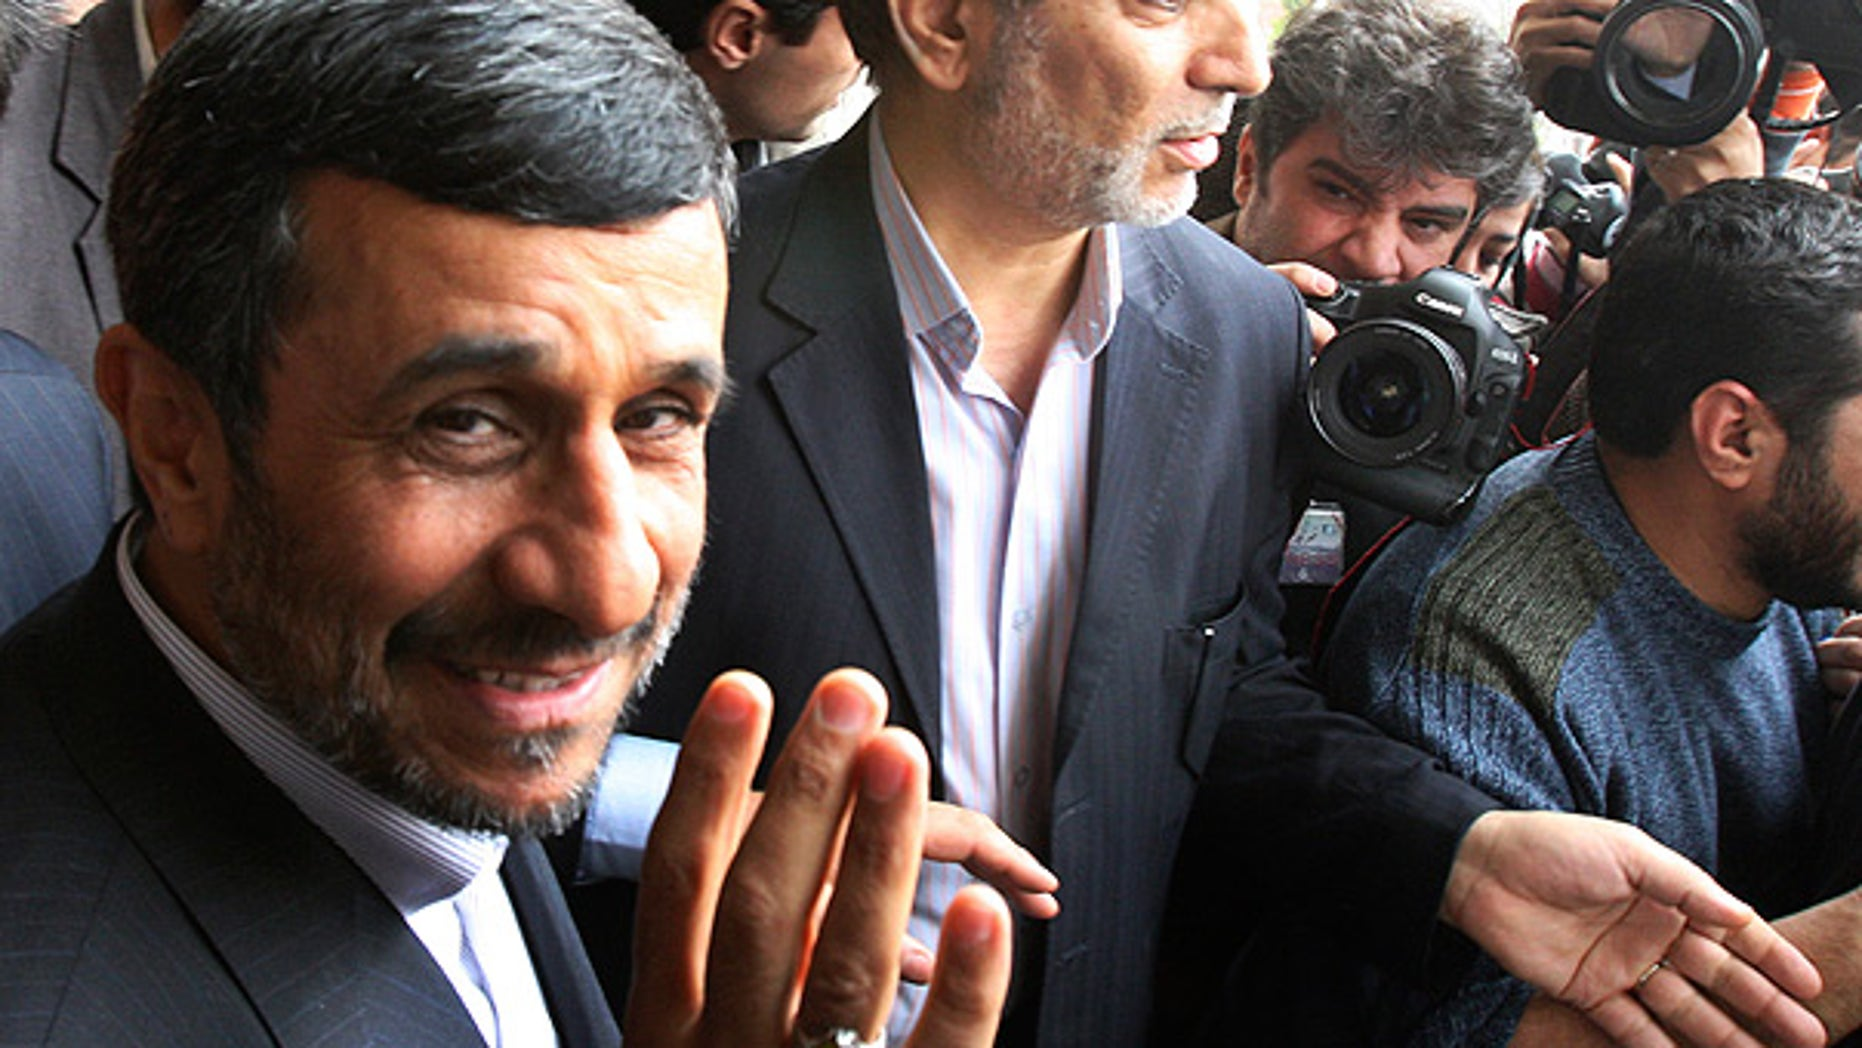 Feb. 20: Iranian President Mahmoud Ahmadinejad waves to the media as he leaves the parliament in Tehran.